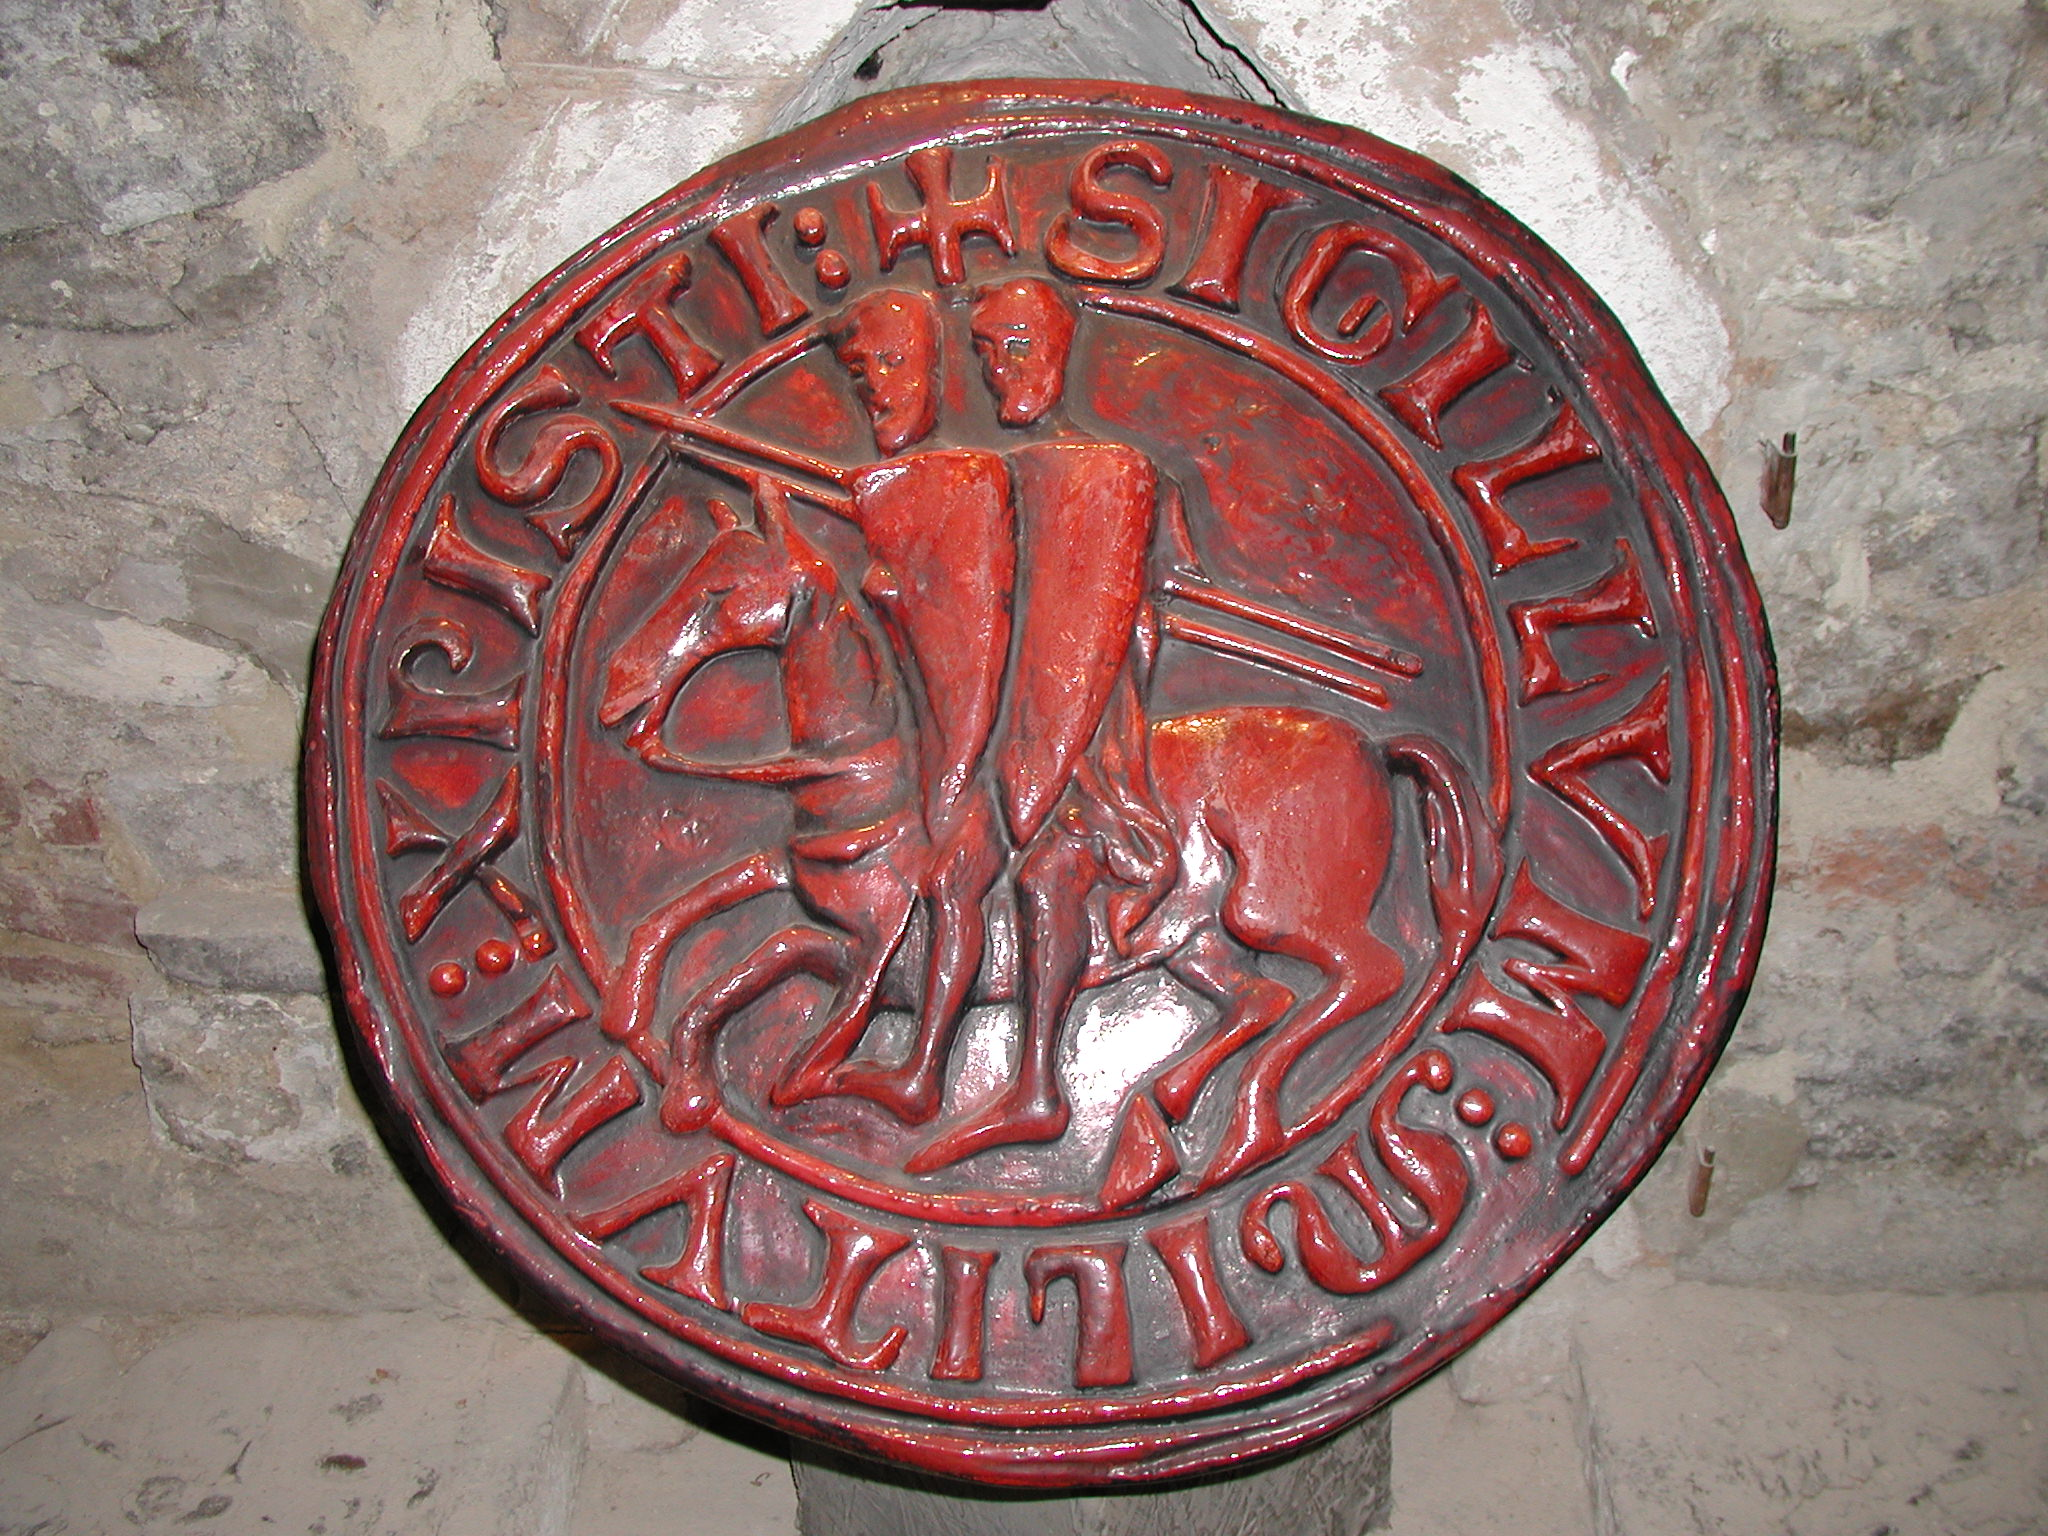 Copy of a seal of the Knights Templar in an exhibition in Prague.